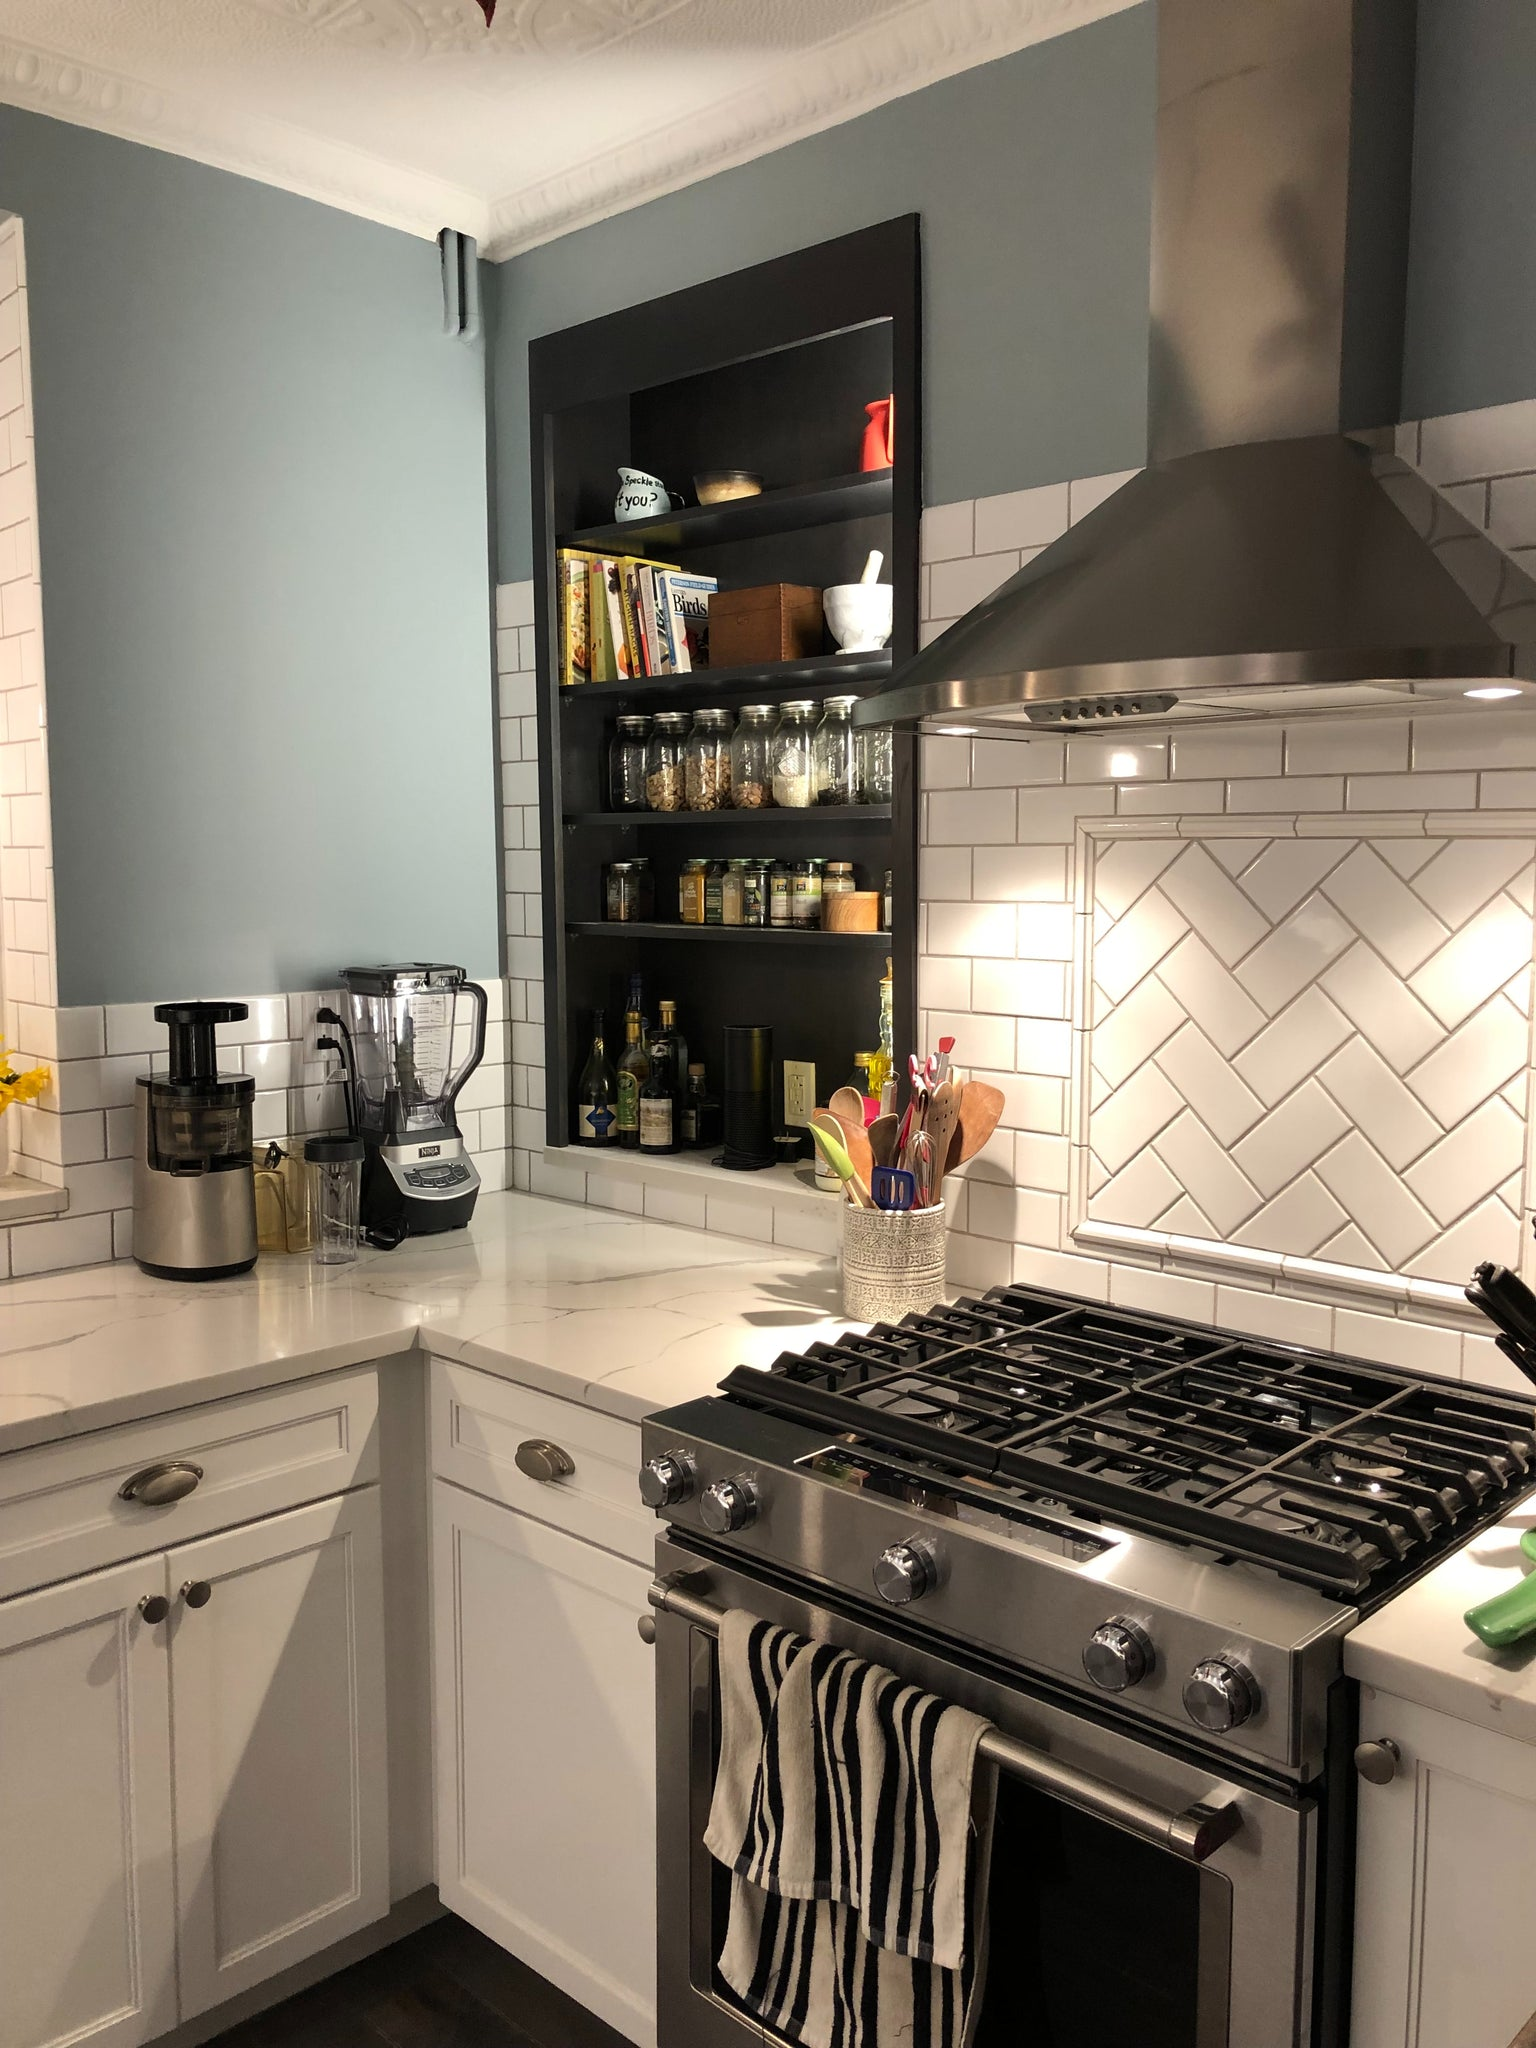 Erindale home cleaning